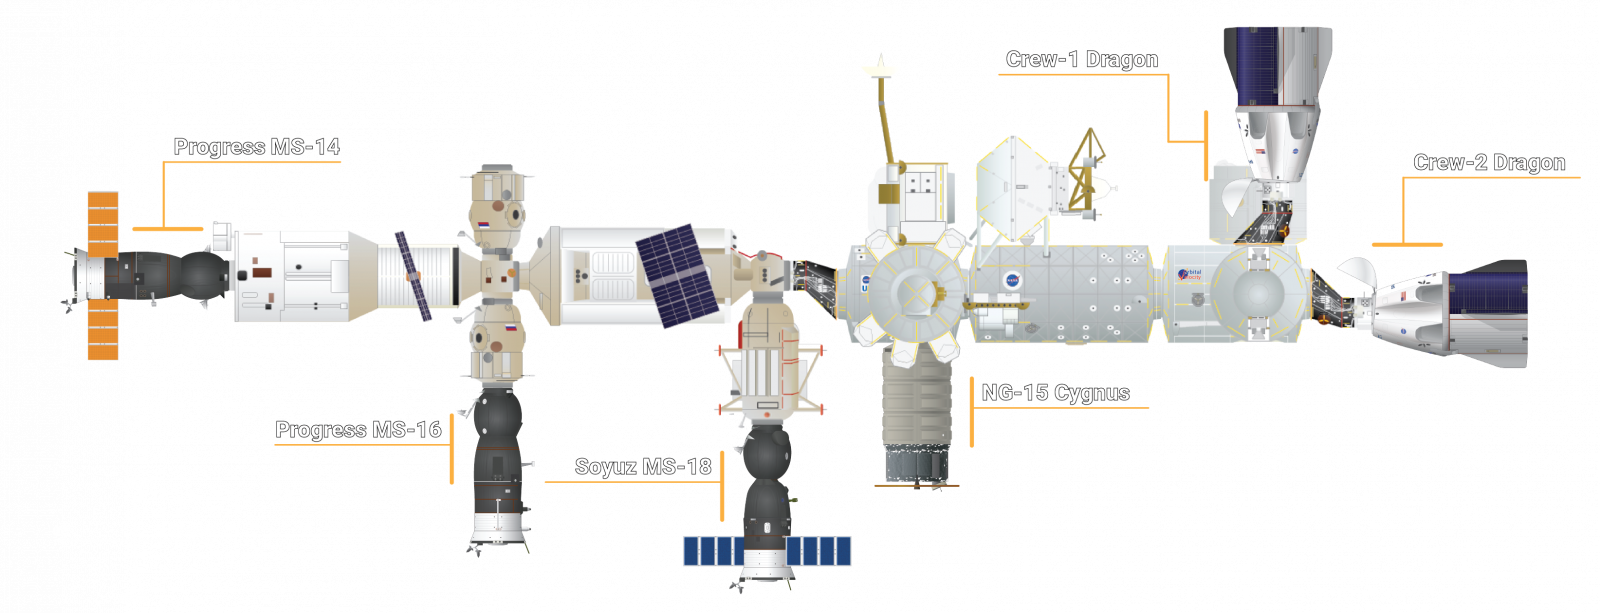 The docking configuration at the International Space Station as of April 24, 2021. There are now six visiting vehicles attached to the orbiting laboratory. Credit: Derek Richardson/Orbital Velocity